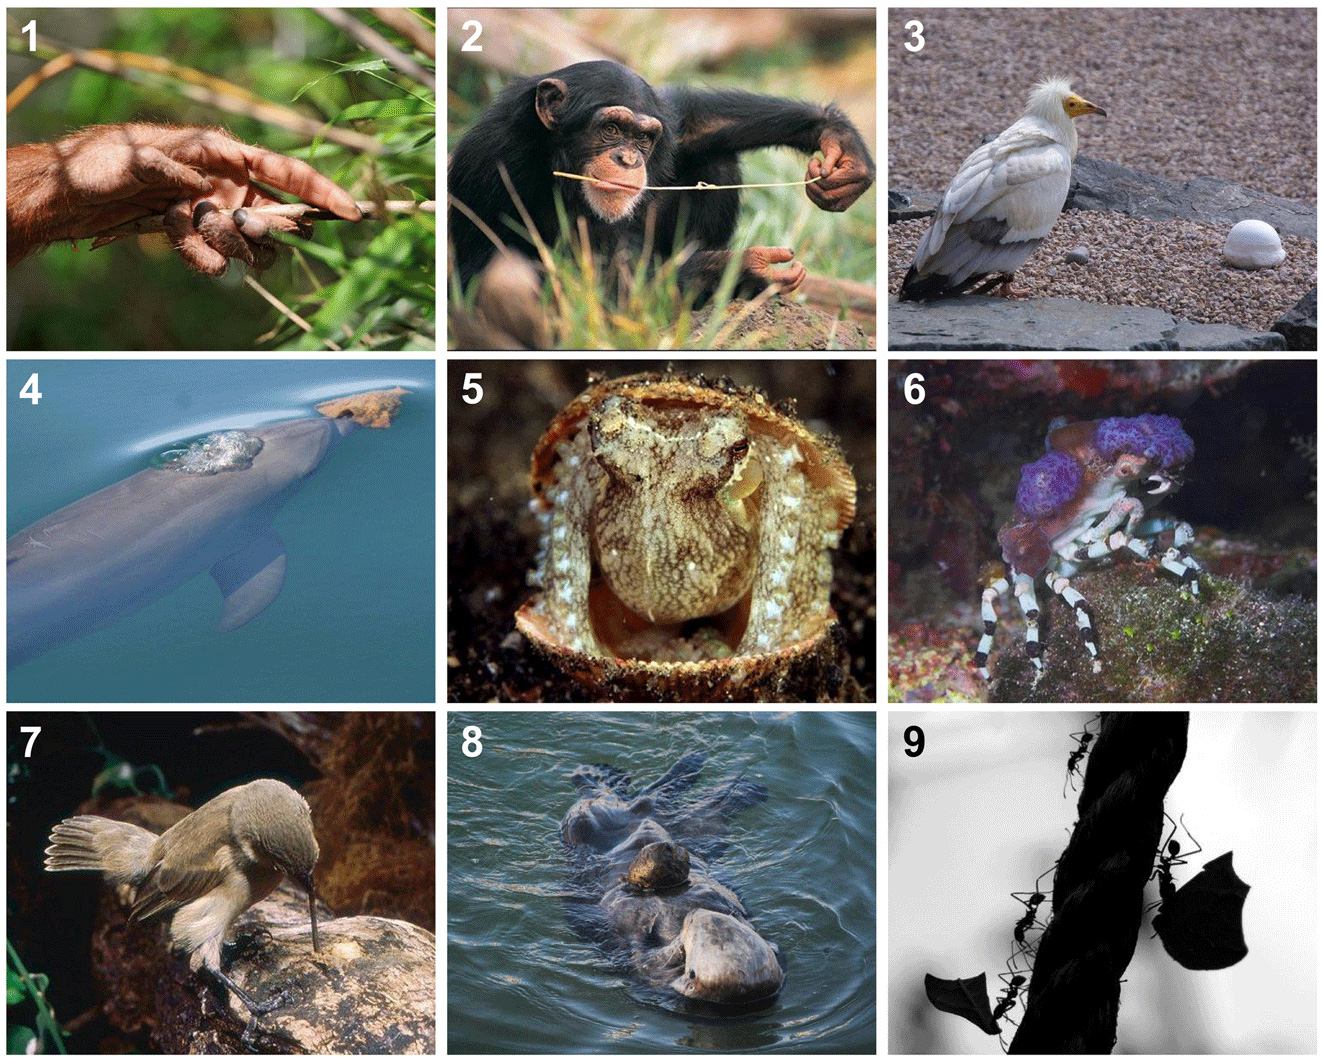 Figure 2 - Examples of animals using tools.